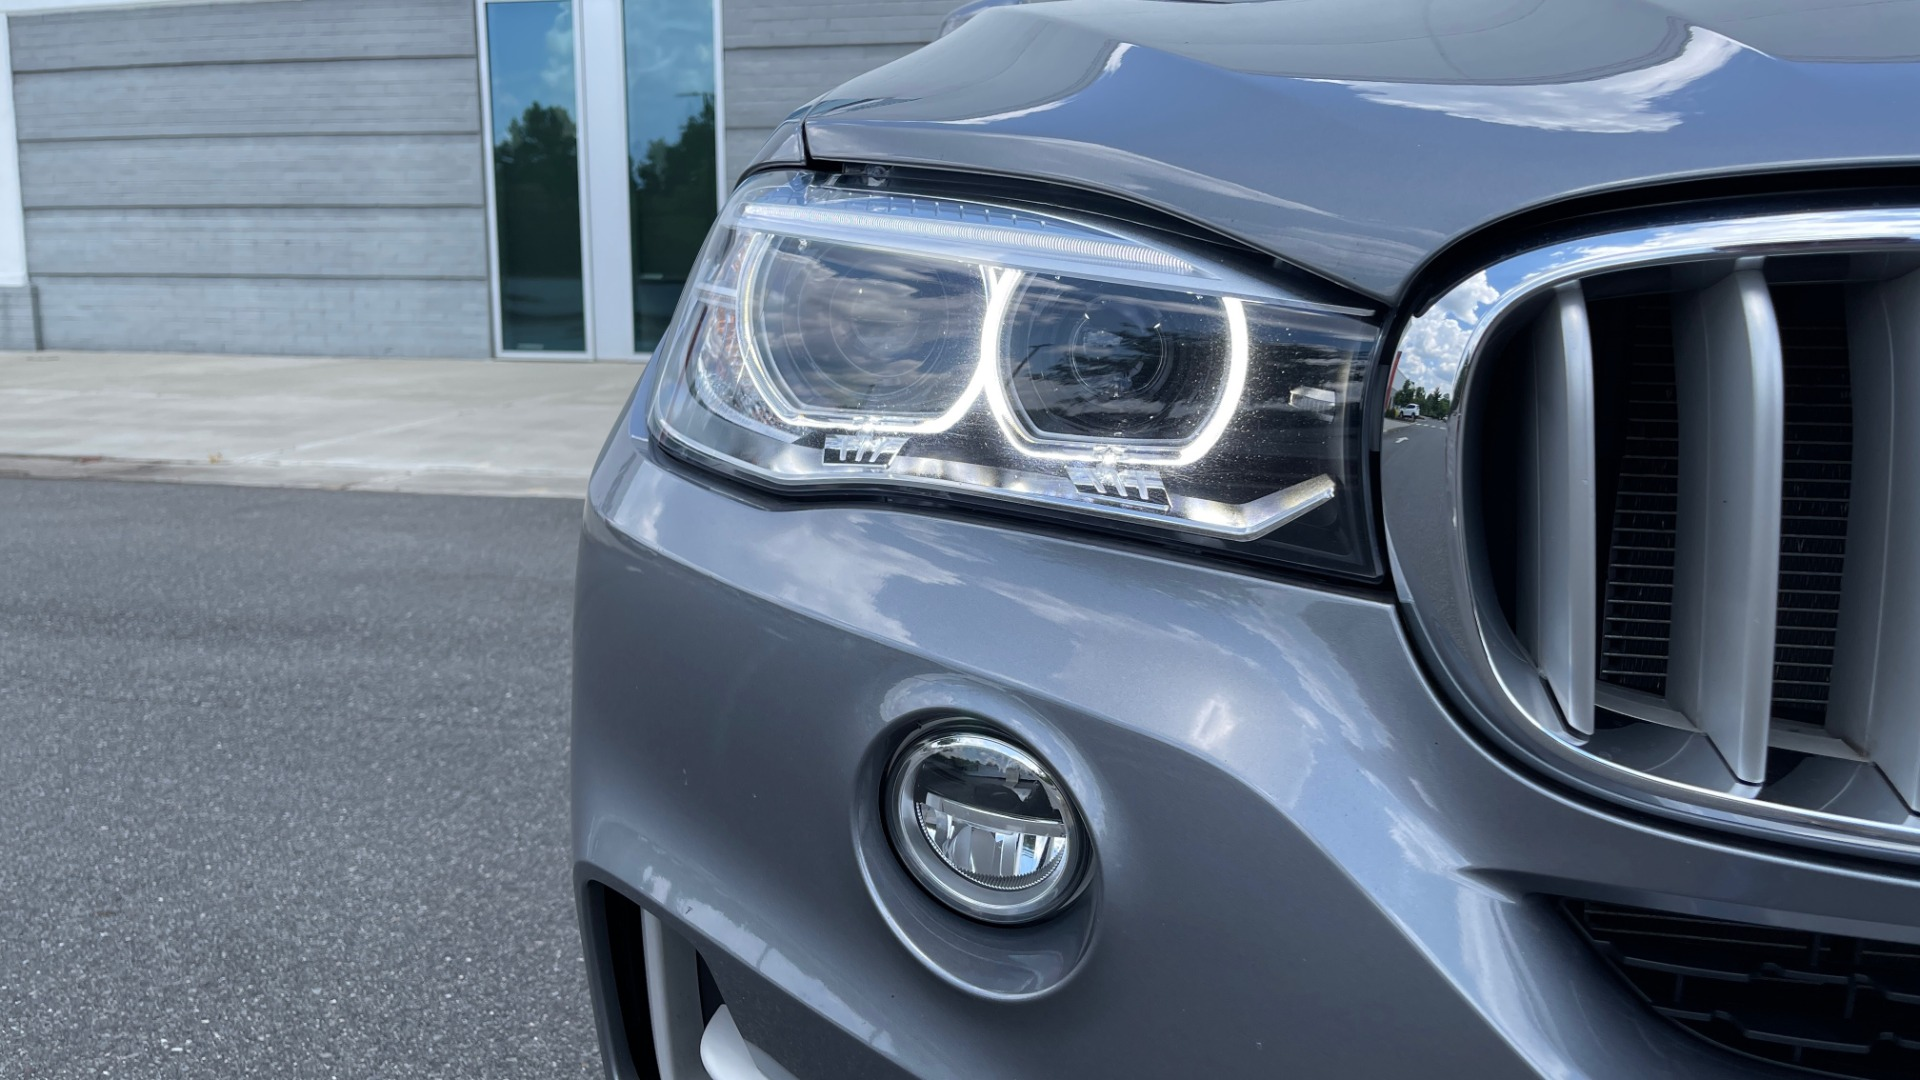 Used 2018 BMW X5 XDRIVE35I PREMIUM / DRVR ASST / WIRELESS CHARGING / CAMERAS for sale $46,995 at Formula Imports in Charlotte NC 28227 15